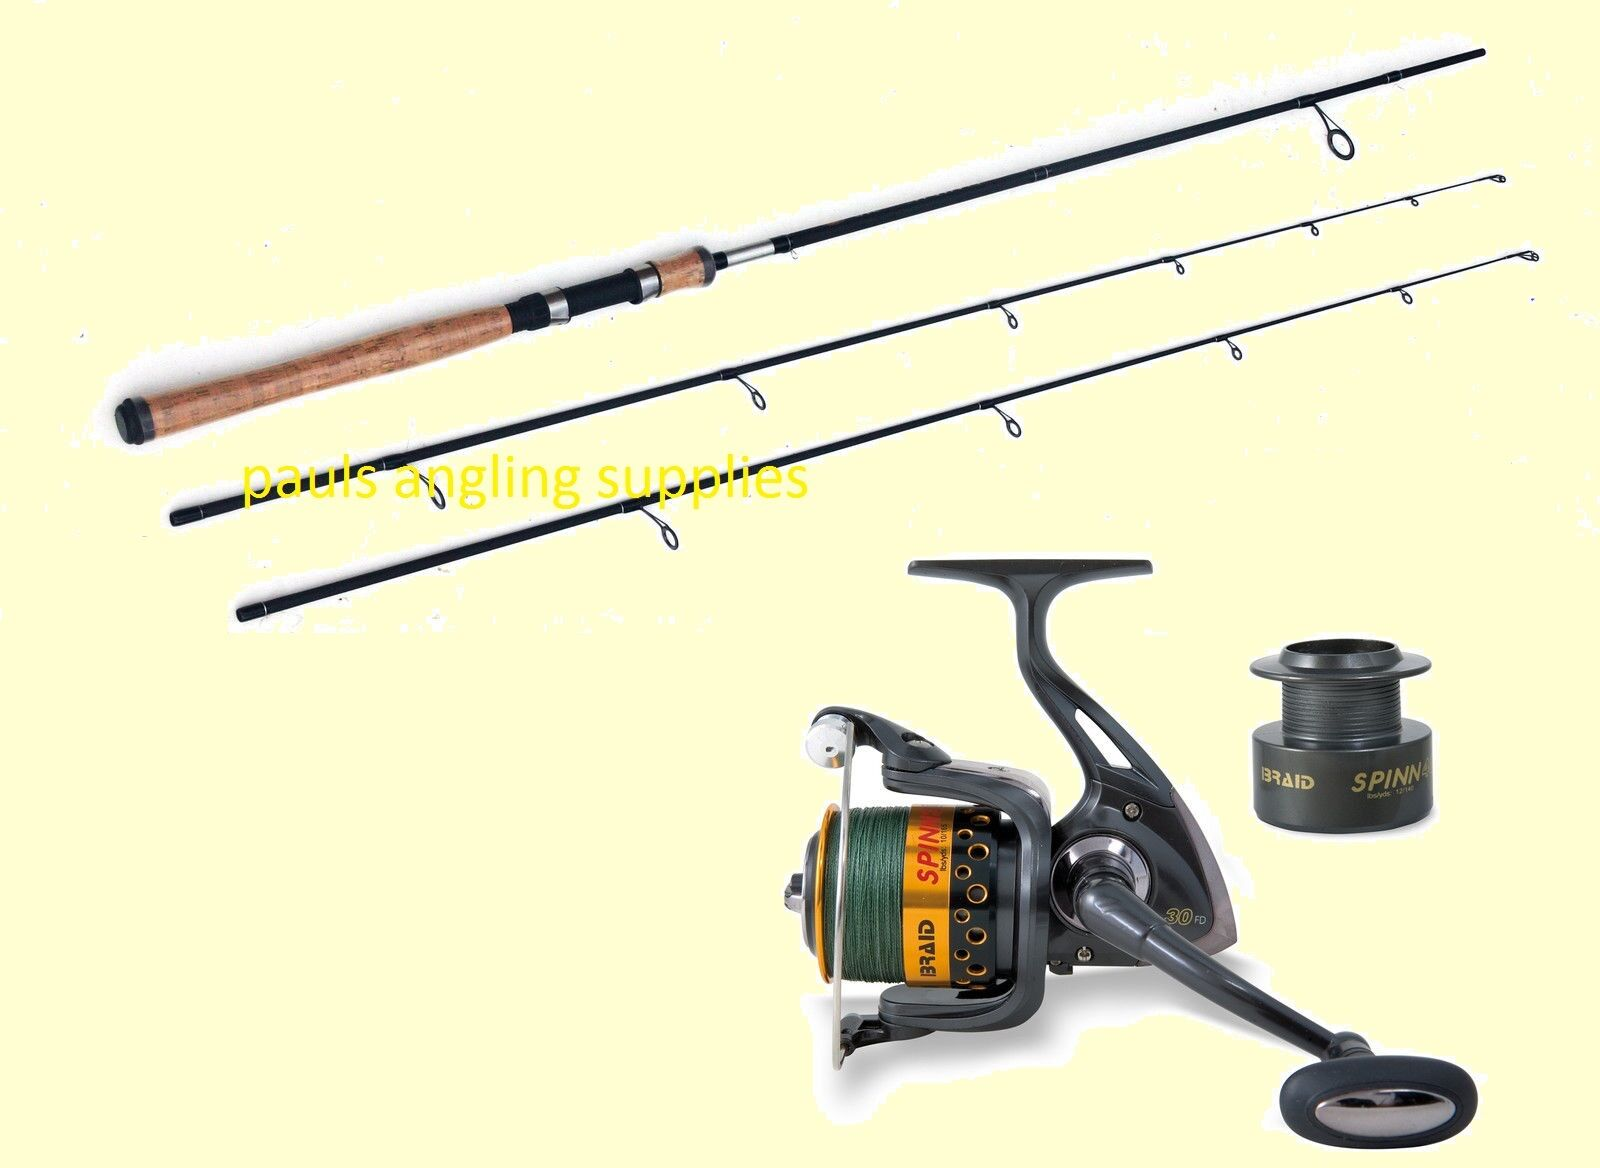 Carbon Twin Top Spinning Rod-2 top spin rod & Braid Spin 030 Reel With Braid